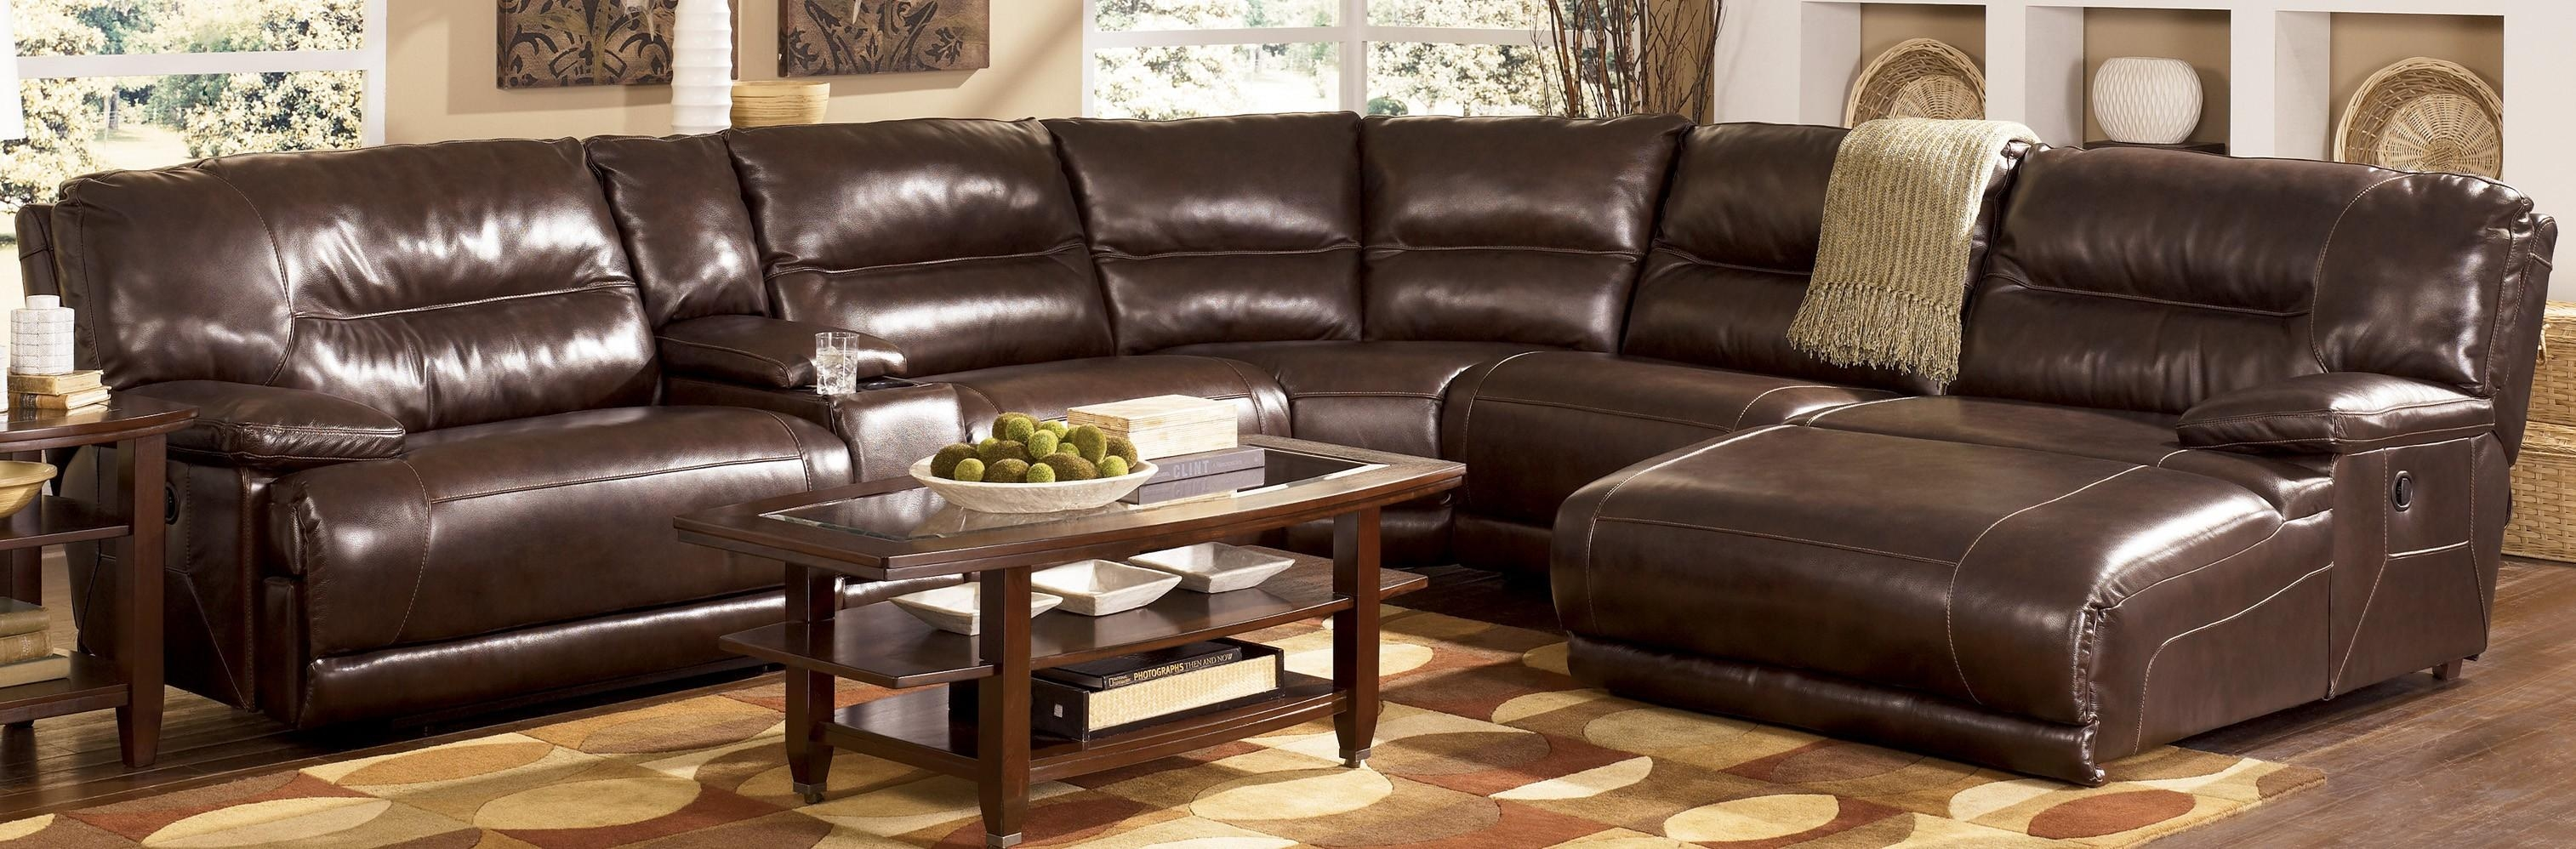 Furniture: Chaise Sectional | Sectional Couches With Recliners In Lazy Boy Leather Sectional (View 8 of 20)